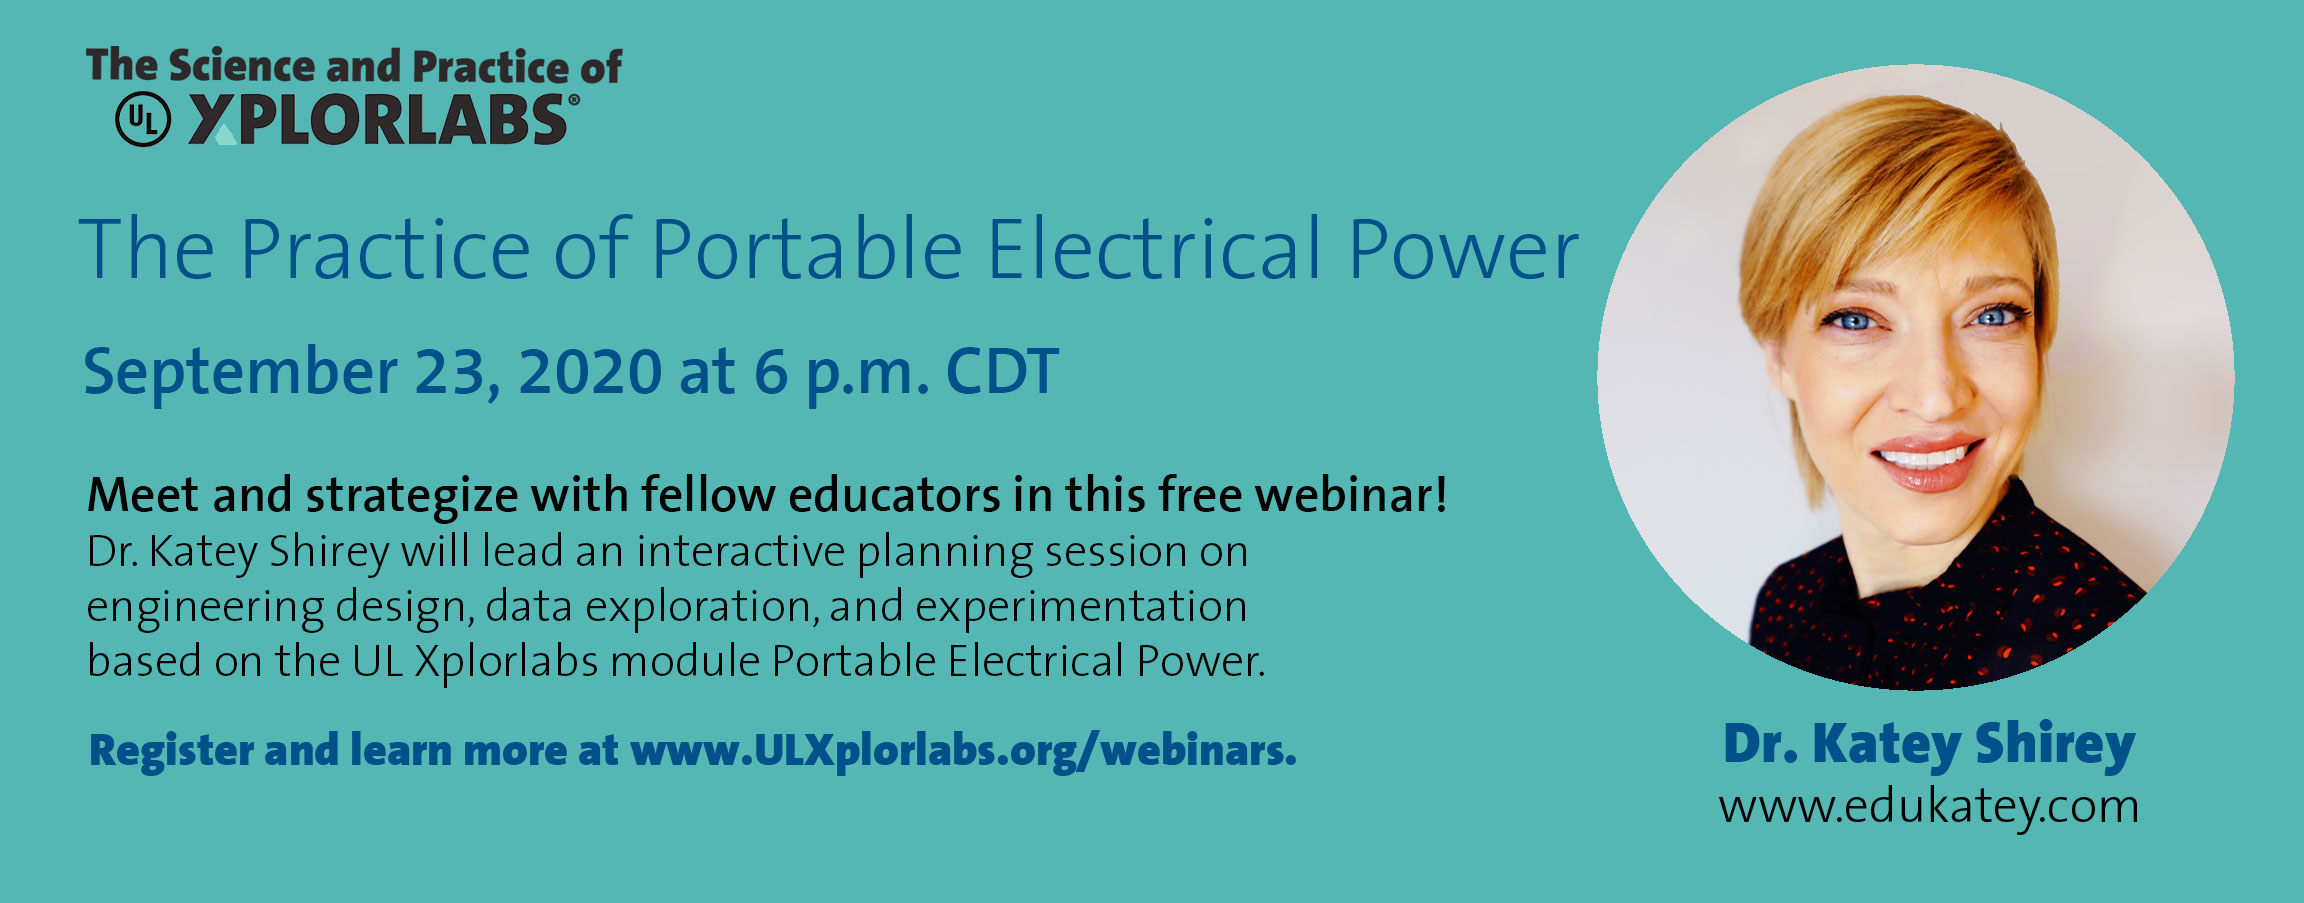 Webinar - The Practice of UL Xplorlabs: Portable Electrical Power